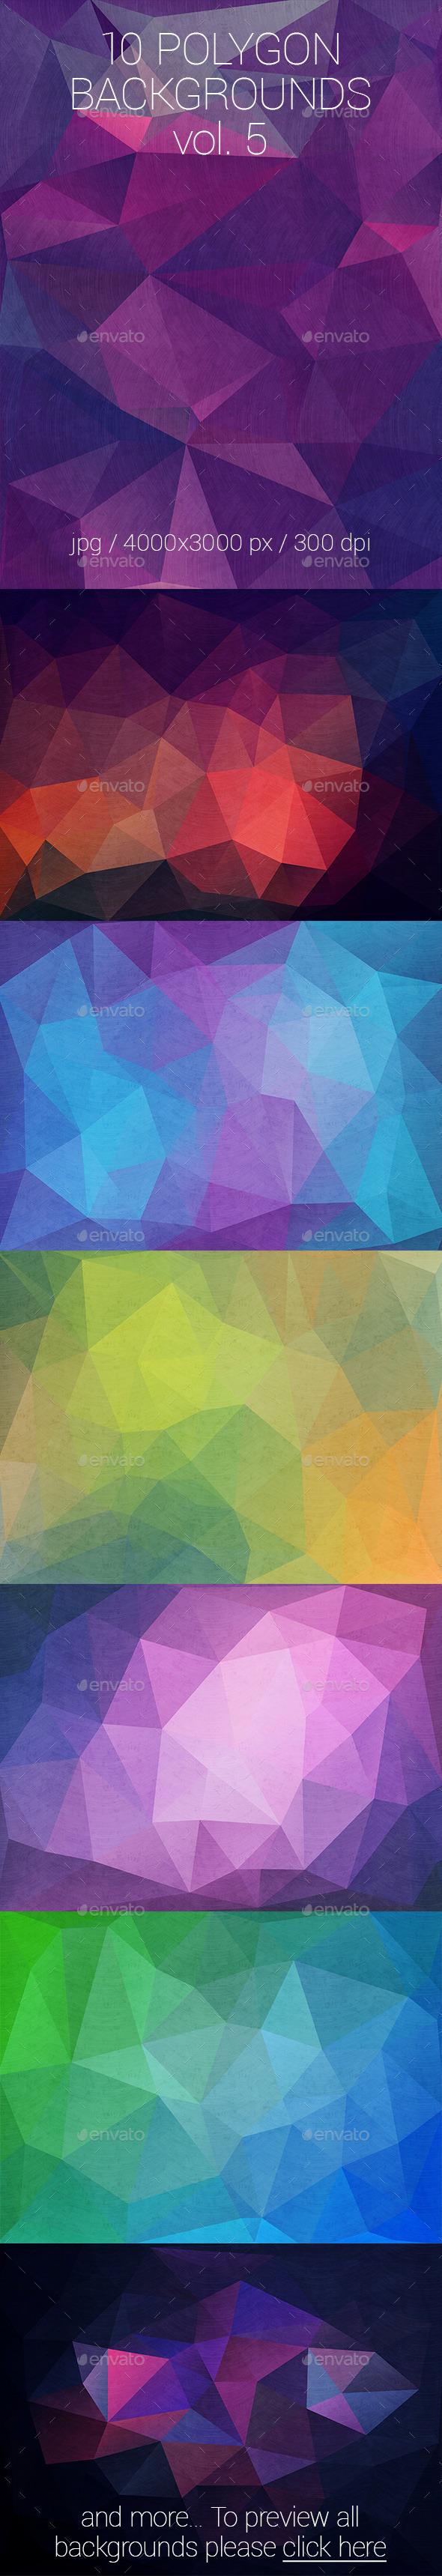 10 Polygon Backgrounds Vol. 5 - Abstract Backgrounds